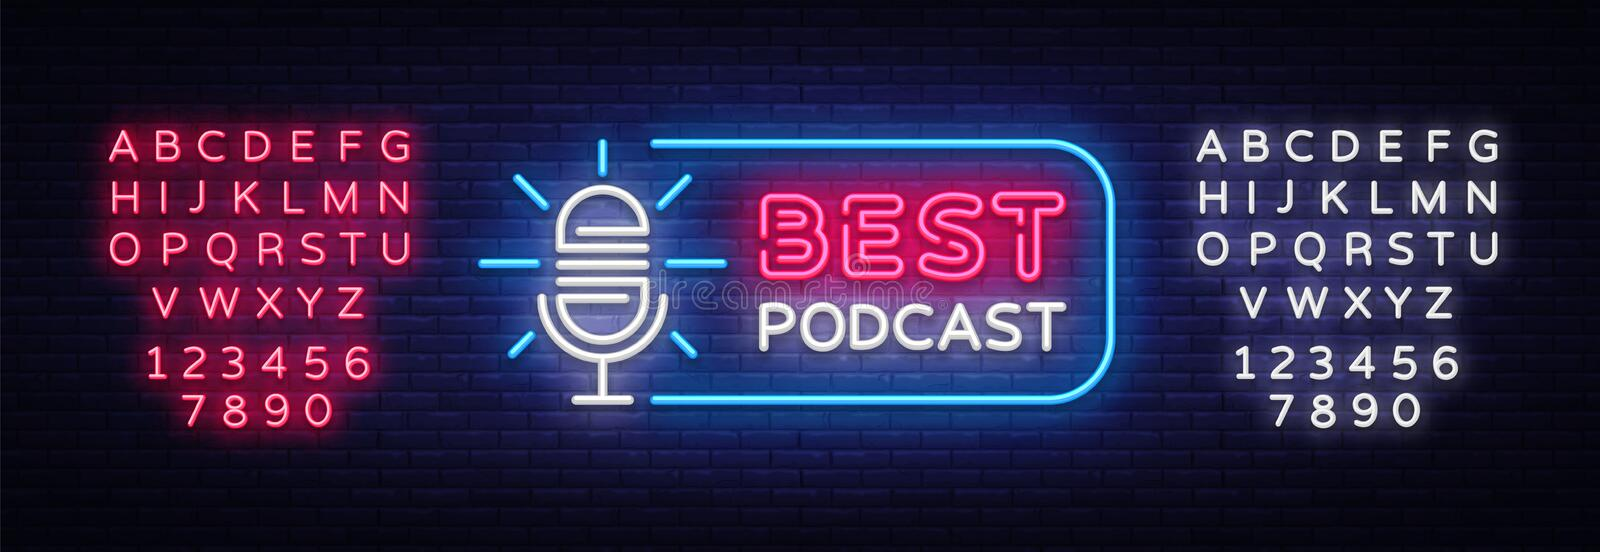 Podcast neon sign vector. Best Podcast Design template neon sign, light banner, neon signboard, nightly bright stock illustration